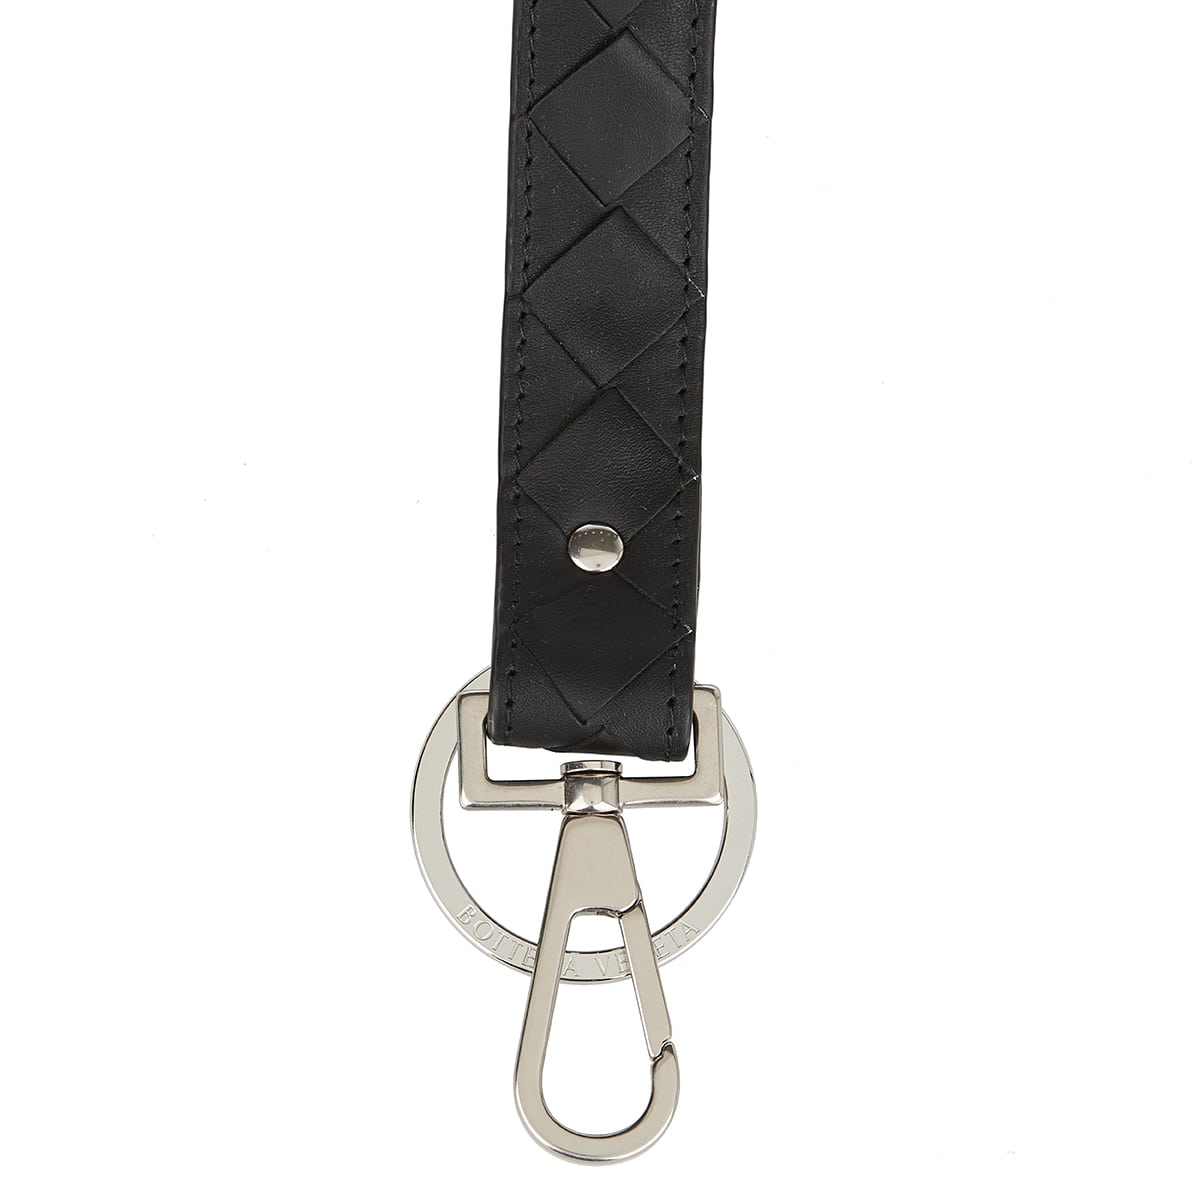 Intrecciato leather key holder